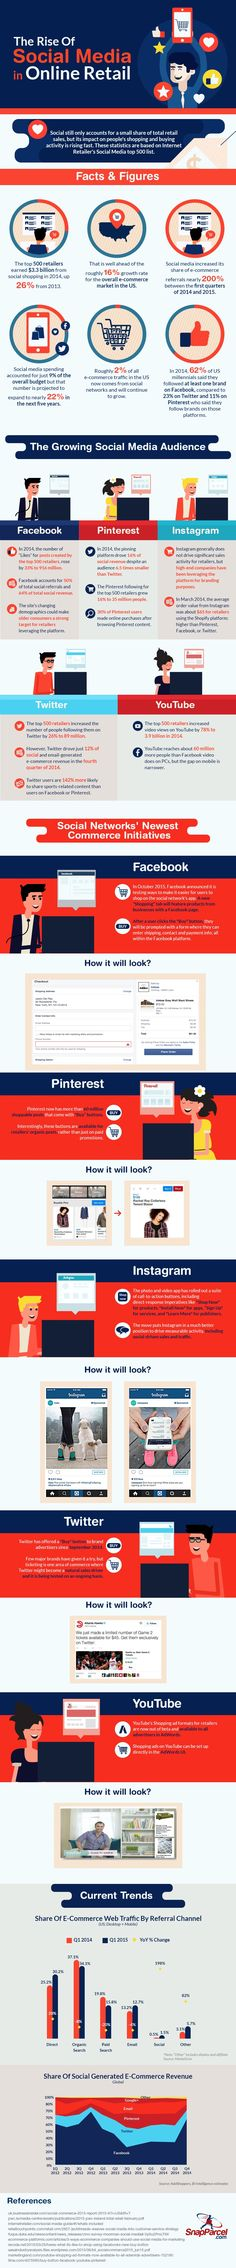 Social media is just a small portion of the overall shopping experience for customers, but it has a huge impact on how a customer engages with the brand.  This infographic by SnapParcel offers some exciting statistics and facts about social media and the consumer behavior.